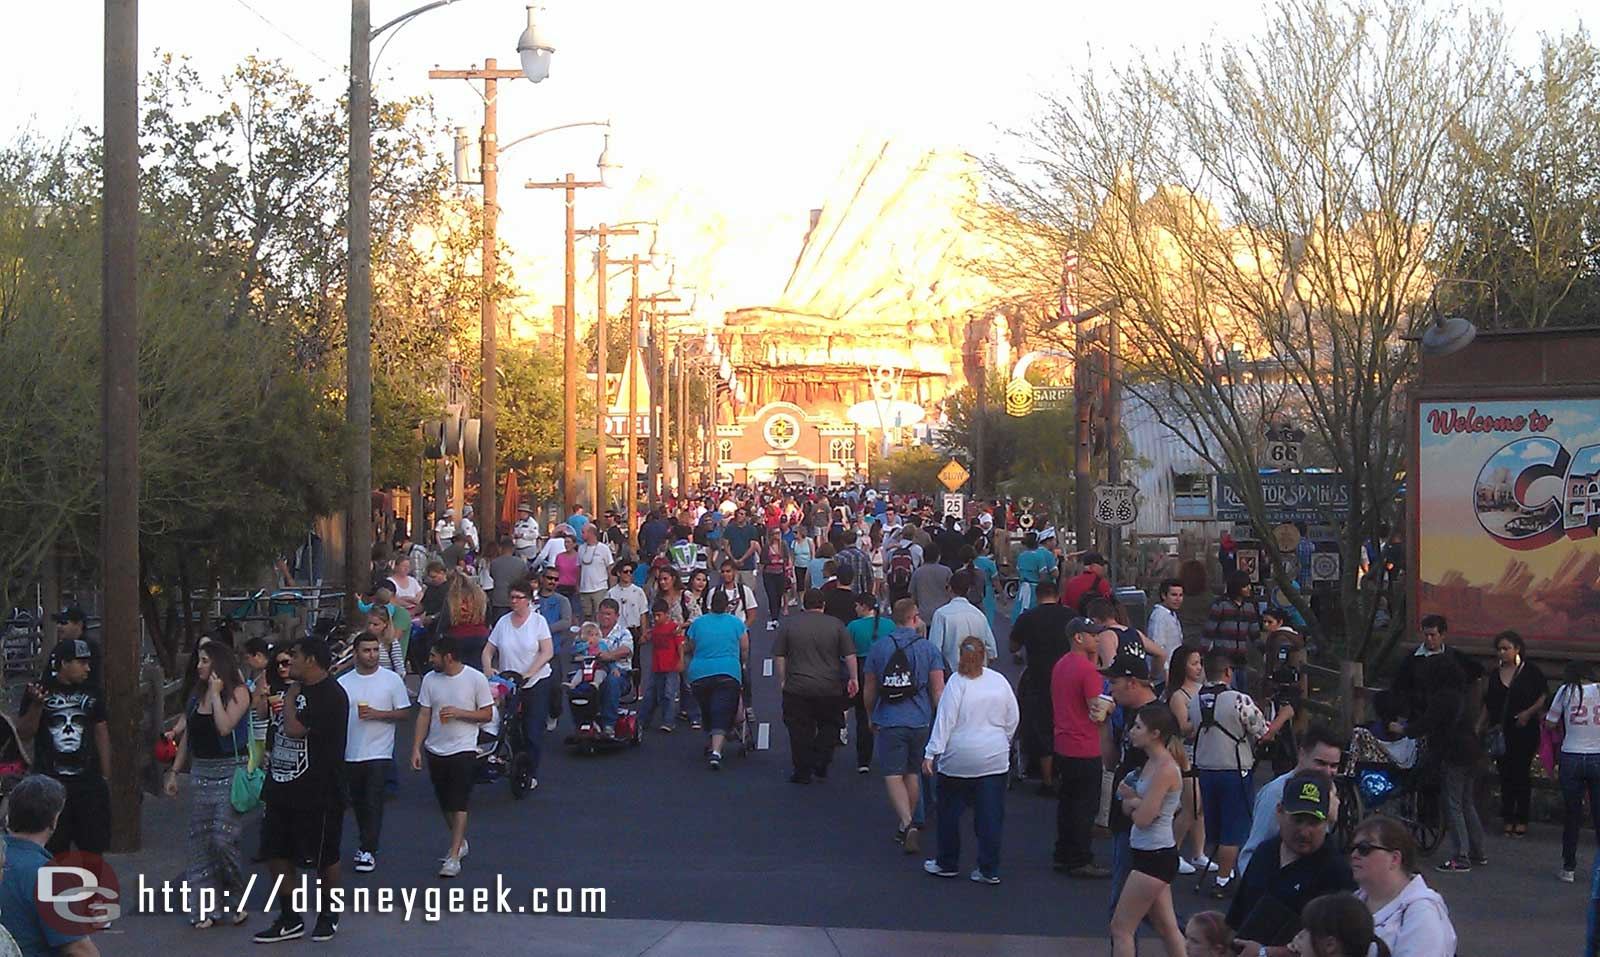 A look down Route 66 in #CarsLand too bad all those people are in the way to see the new surface and lines